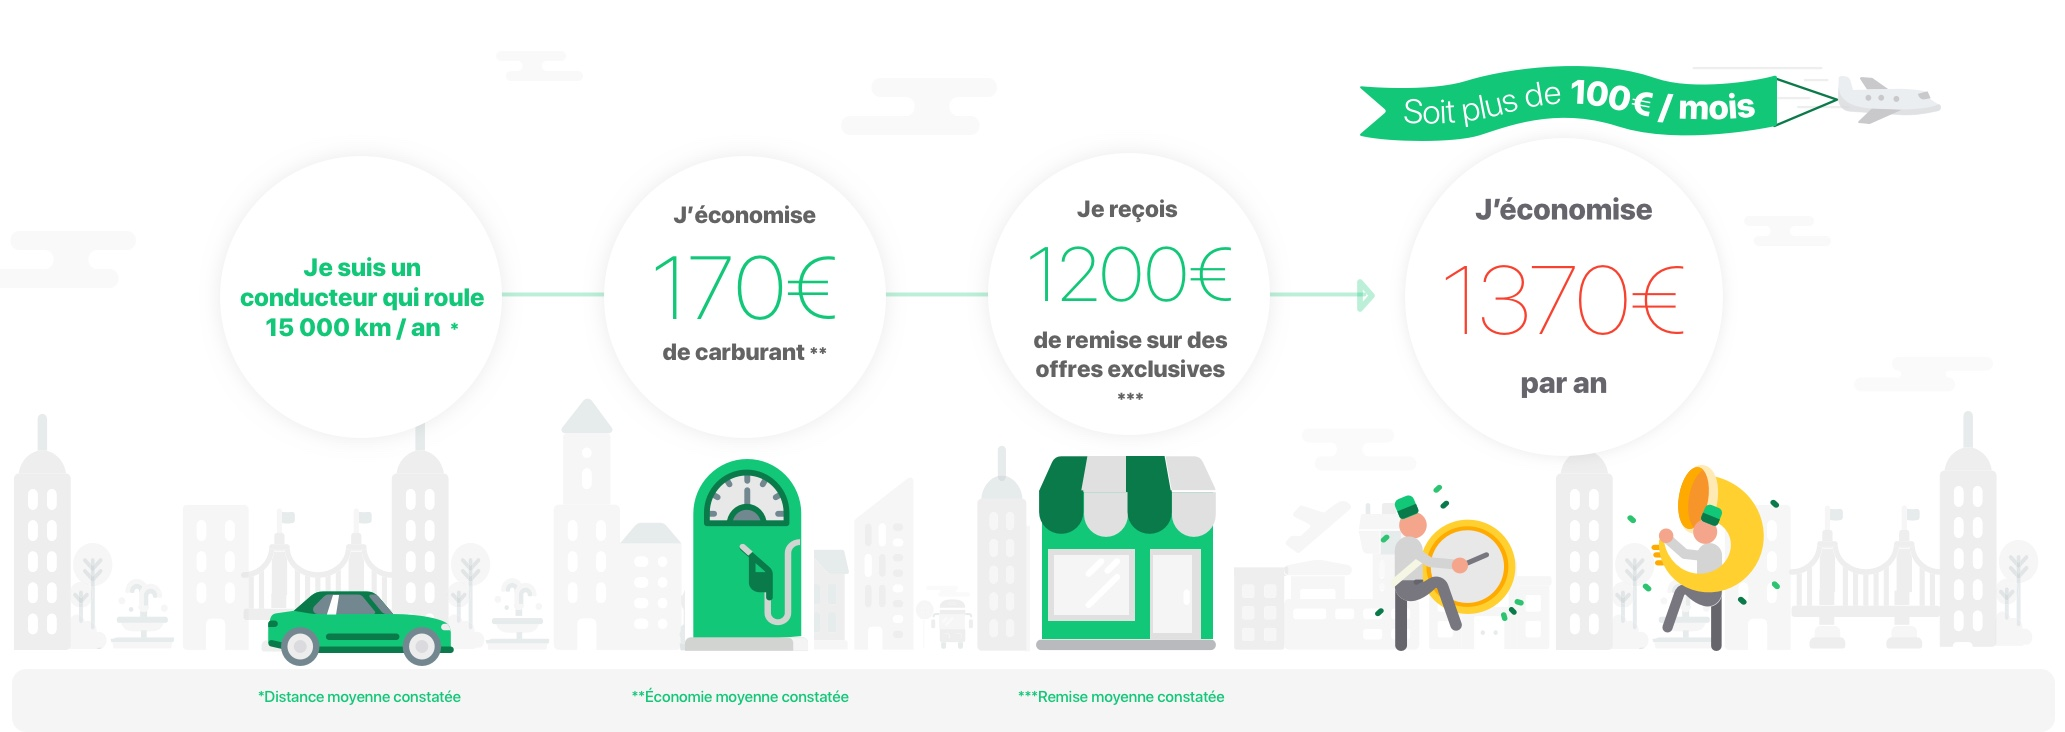 eiver allows you to save up to € 1370 per year. here's how